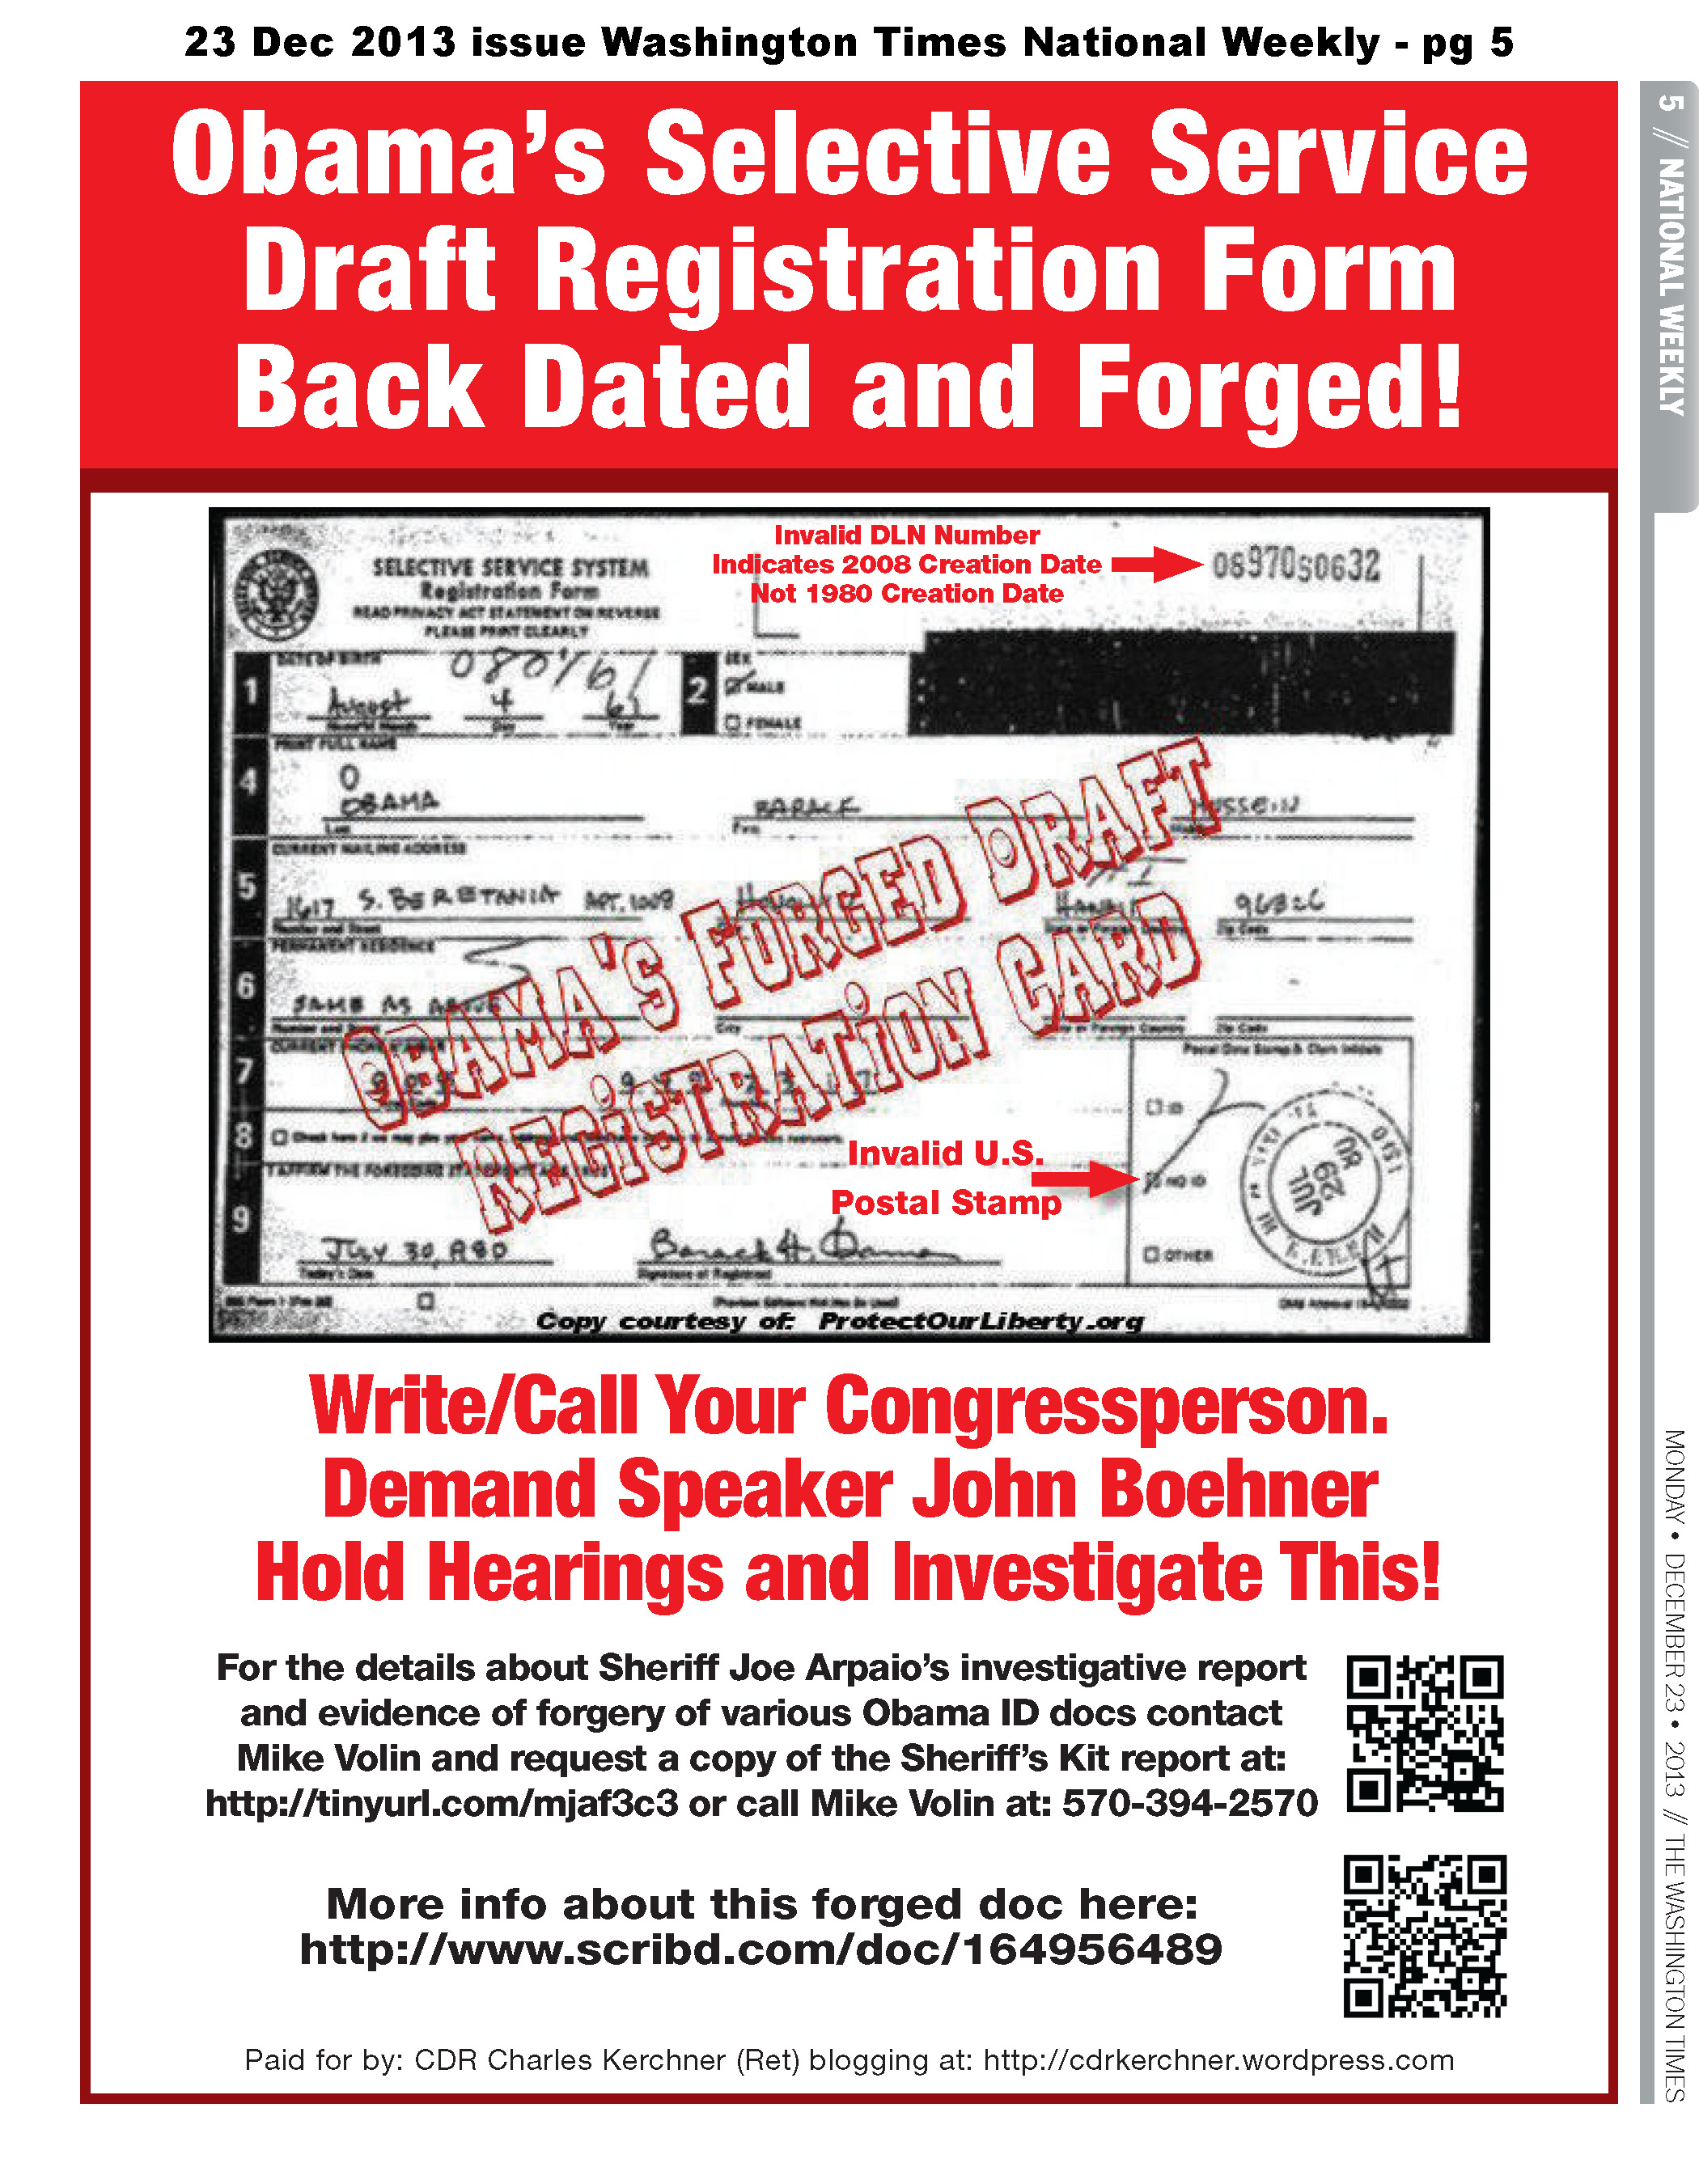 Obama Draft Reg Card Forged